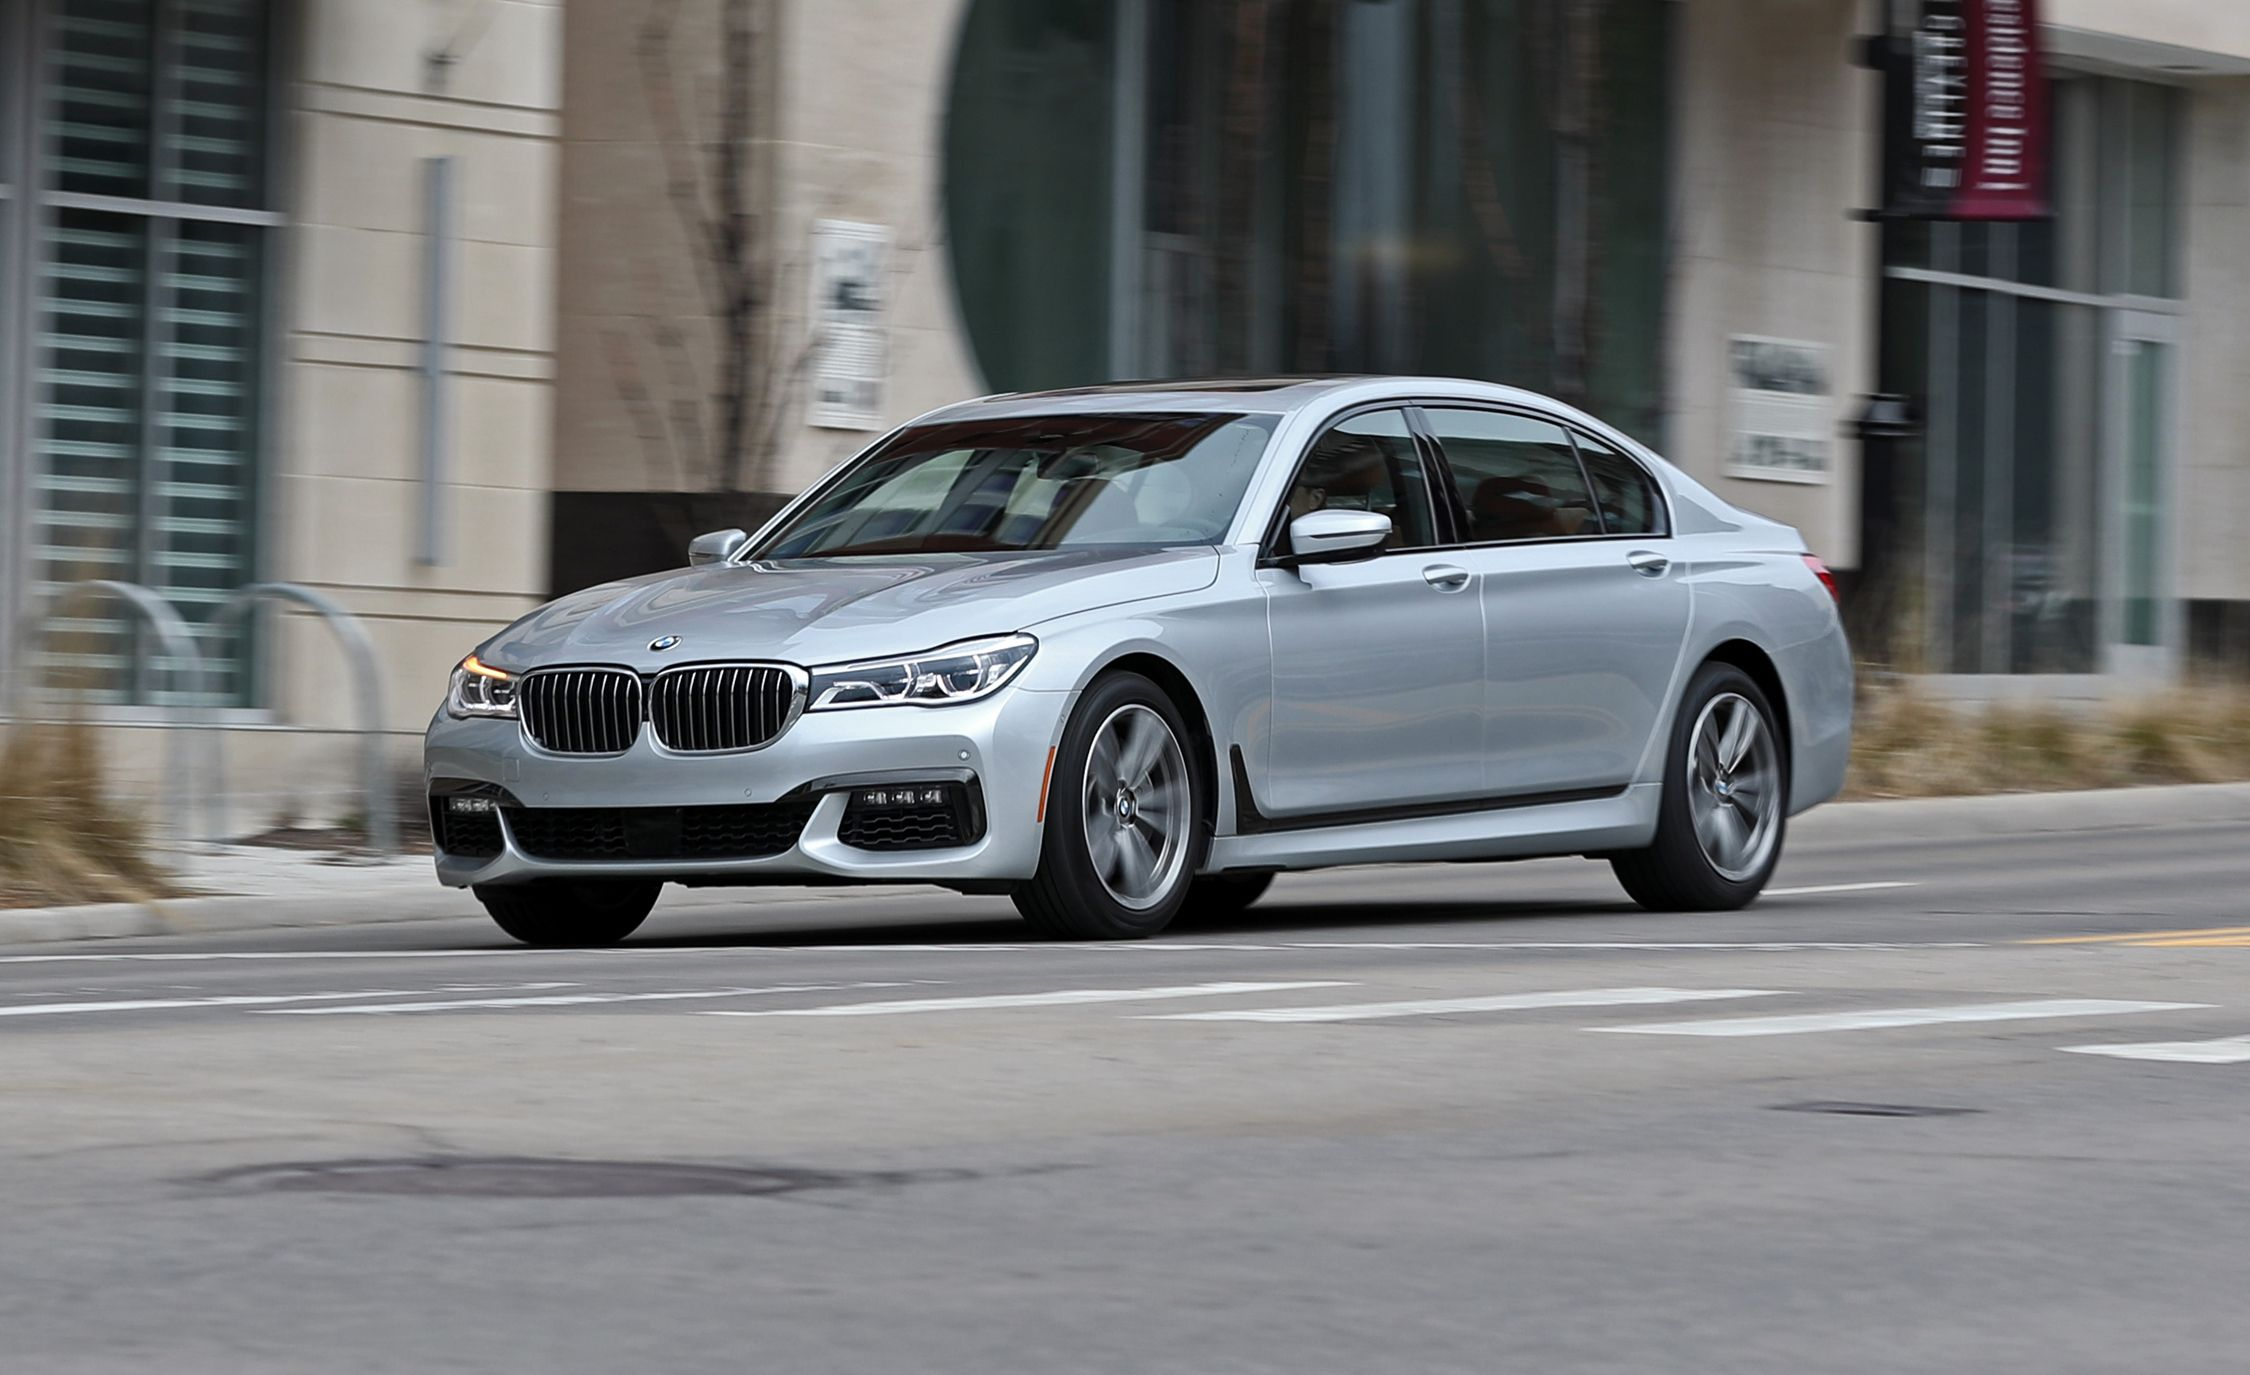 bmw 7 series reviews bmw 7 series price photos and. Black Bedroom Furniture Sets. Home Design Ideas